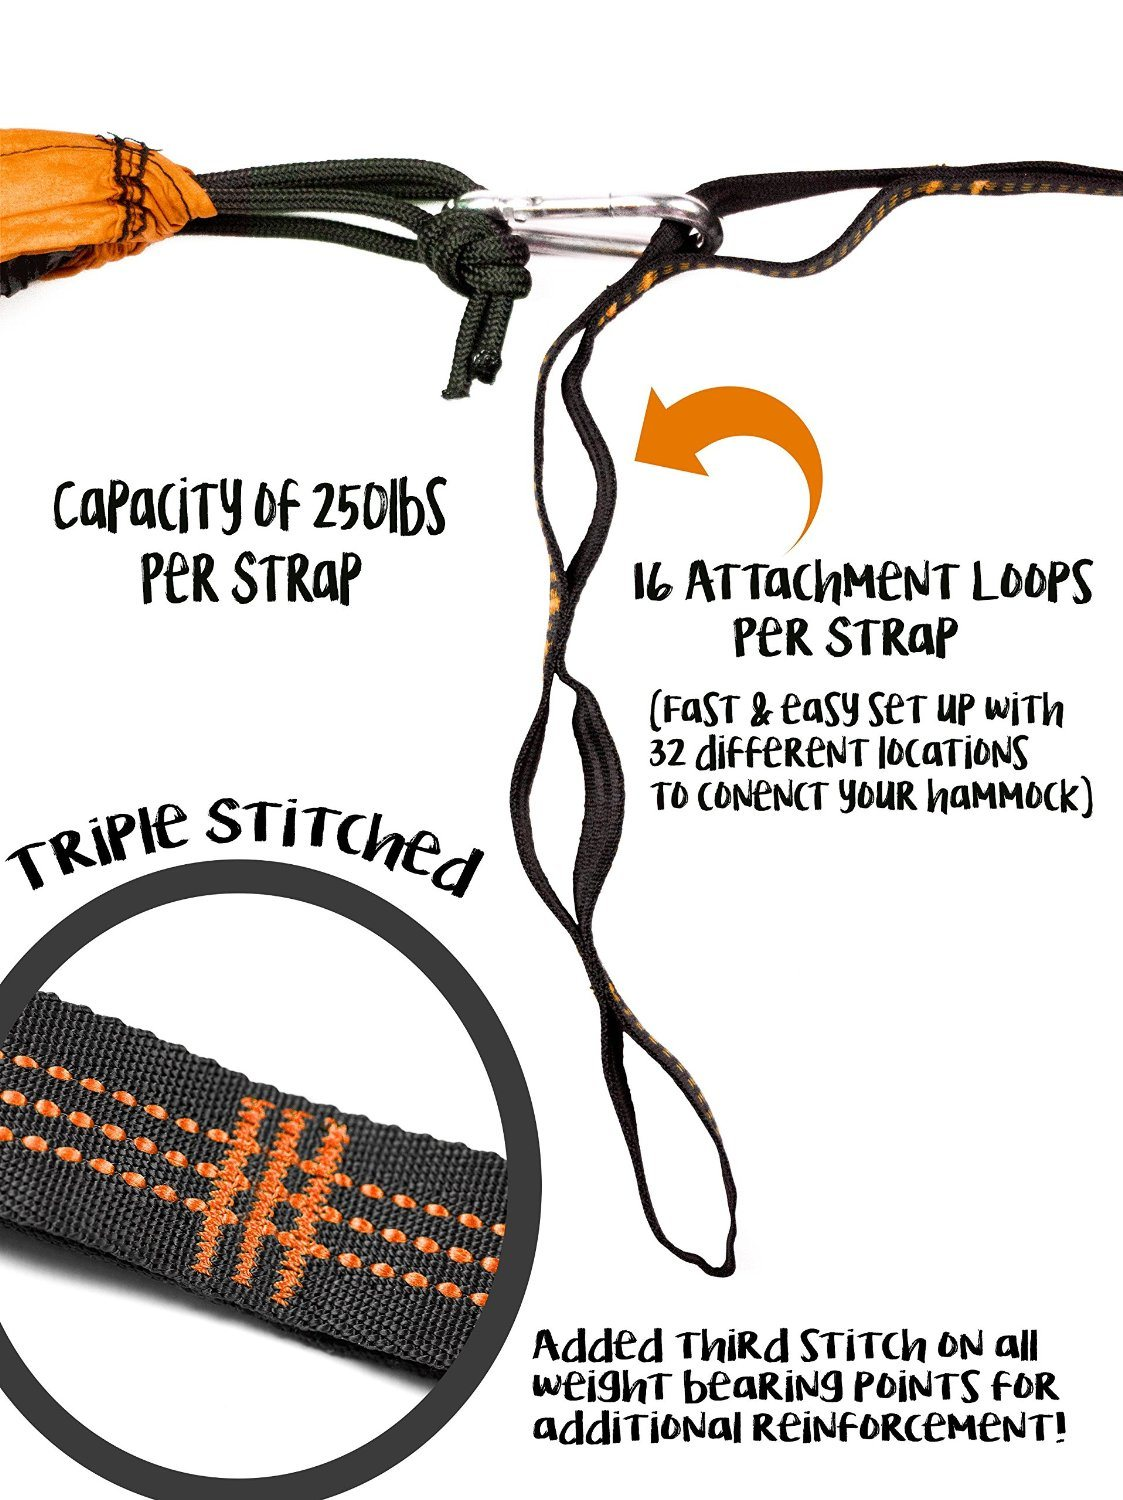 Carries Portable Multifunctional Hammock Tree Straps with Carabiners